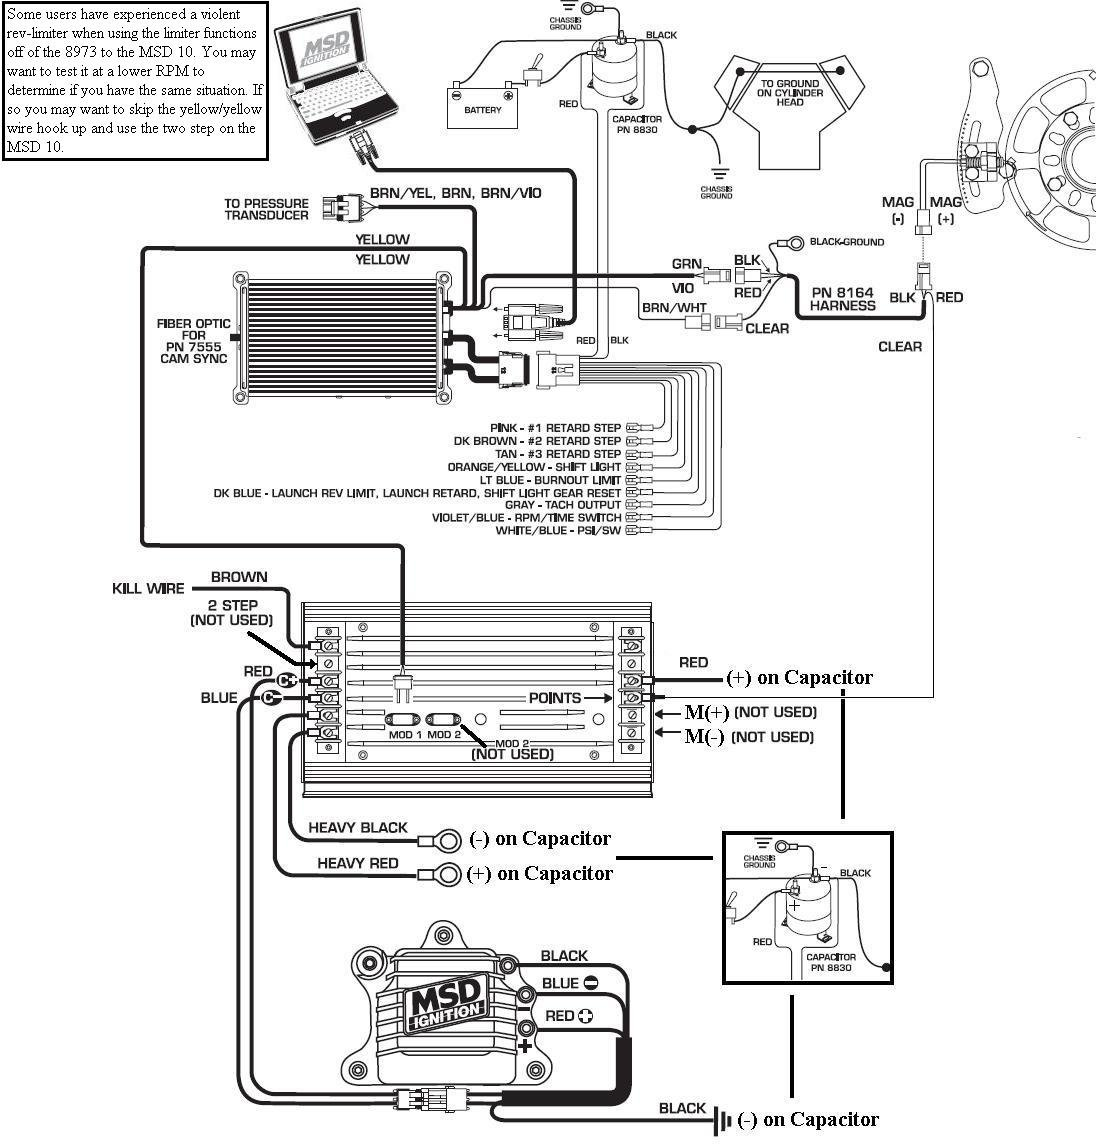 medium resolution of 8973 to msd 10 msd blog msd ford wiring diagrams msd streetfire 5520 wiring diagram